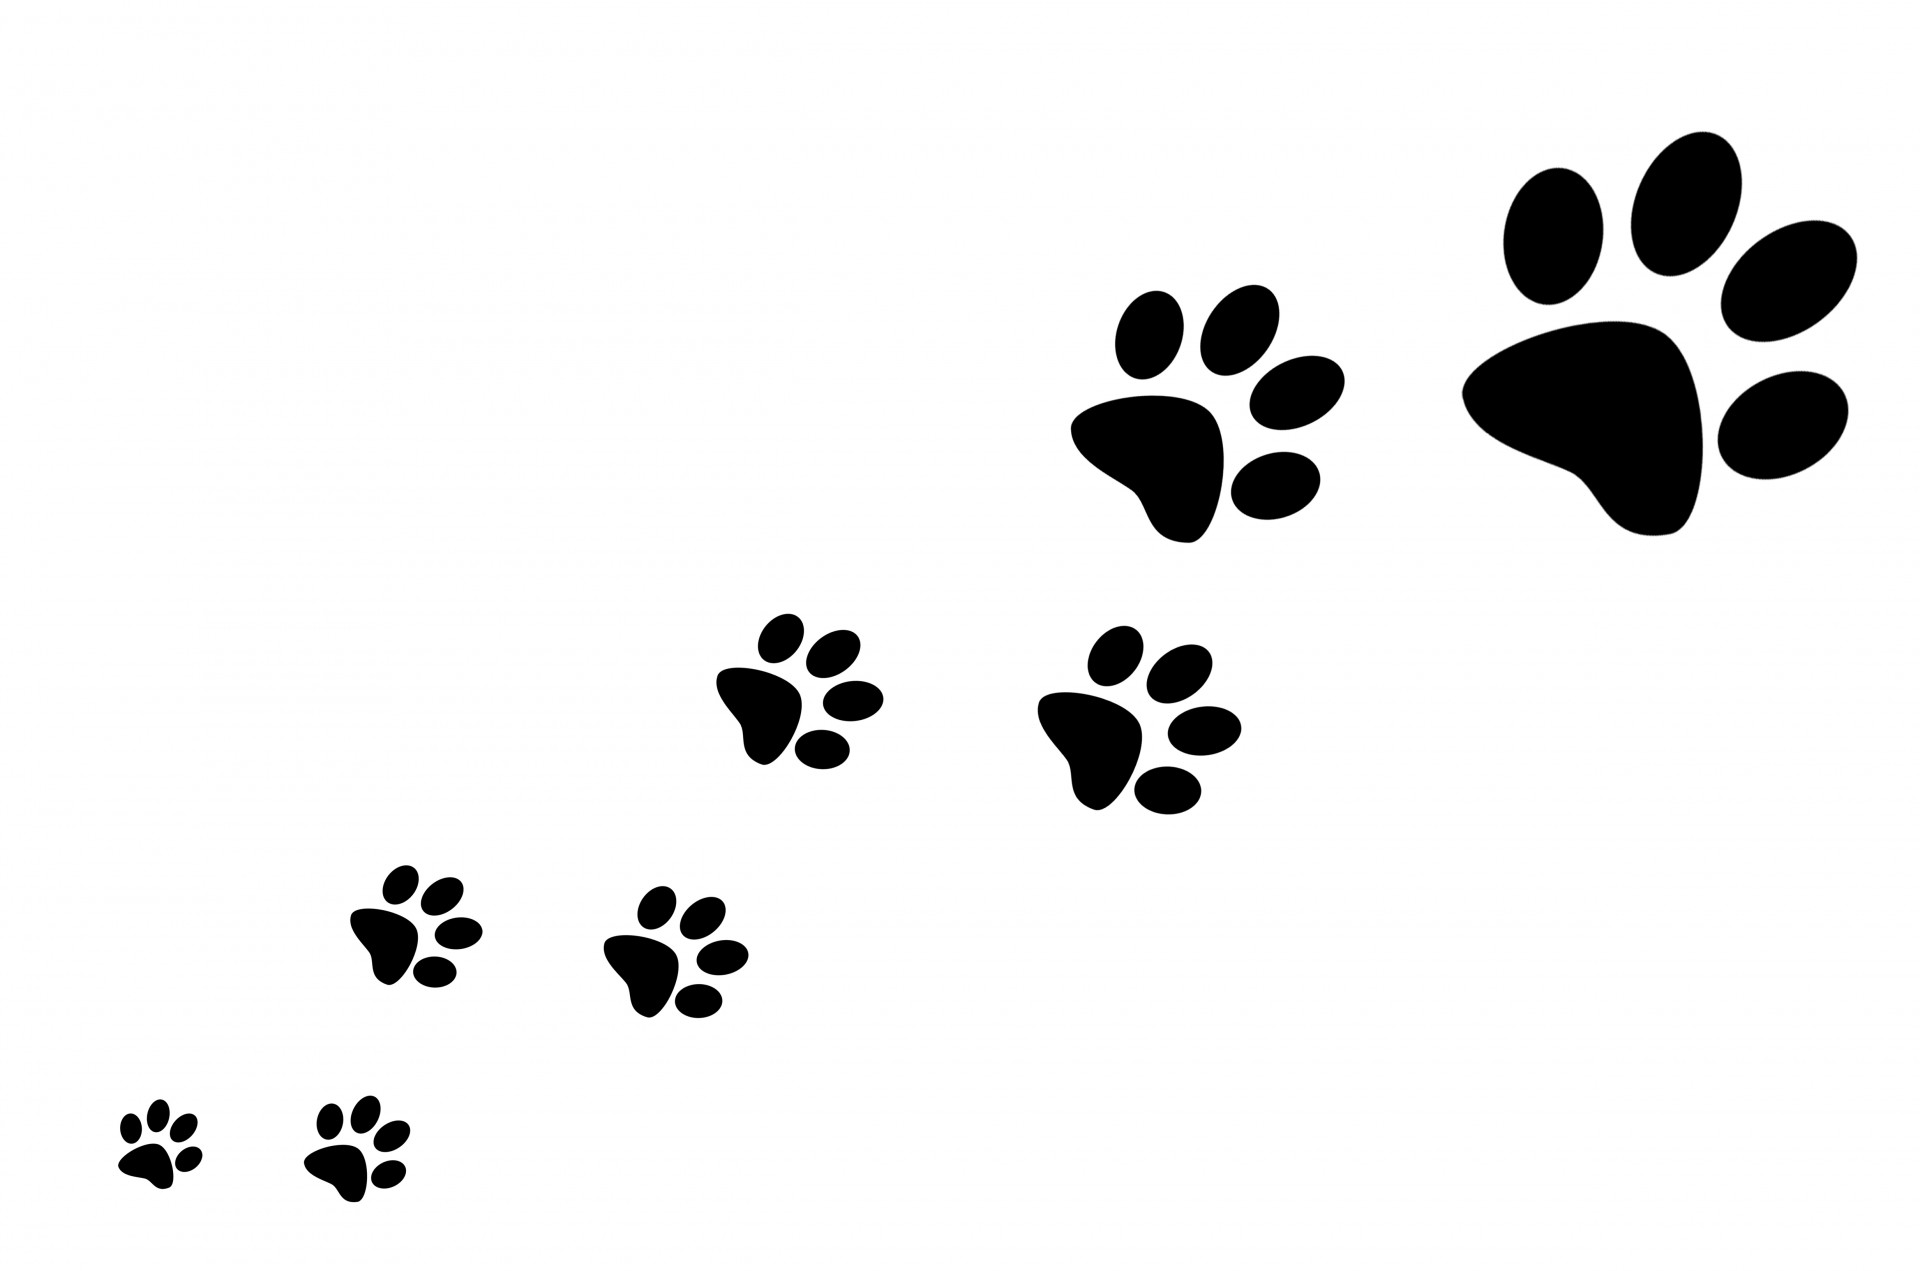 Free Download Paw Prints Stock Photo Hd Public Domain Pictures 1920x1271 For Your Desktop Mobile Tablet Explore 67 Paw Print Wallpaper Dog Paw Print Wallpaper Border Paw Print Wallpaper For commercial and personal projects. wallpapersafari